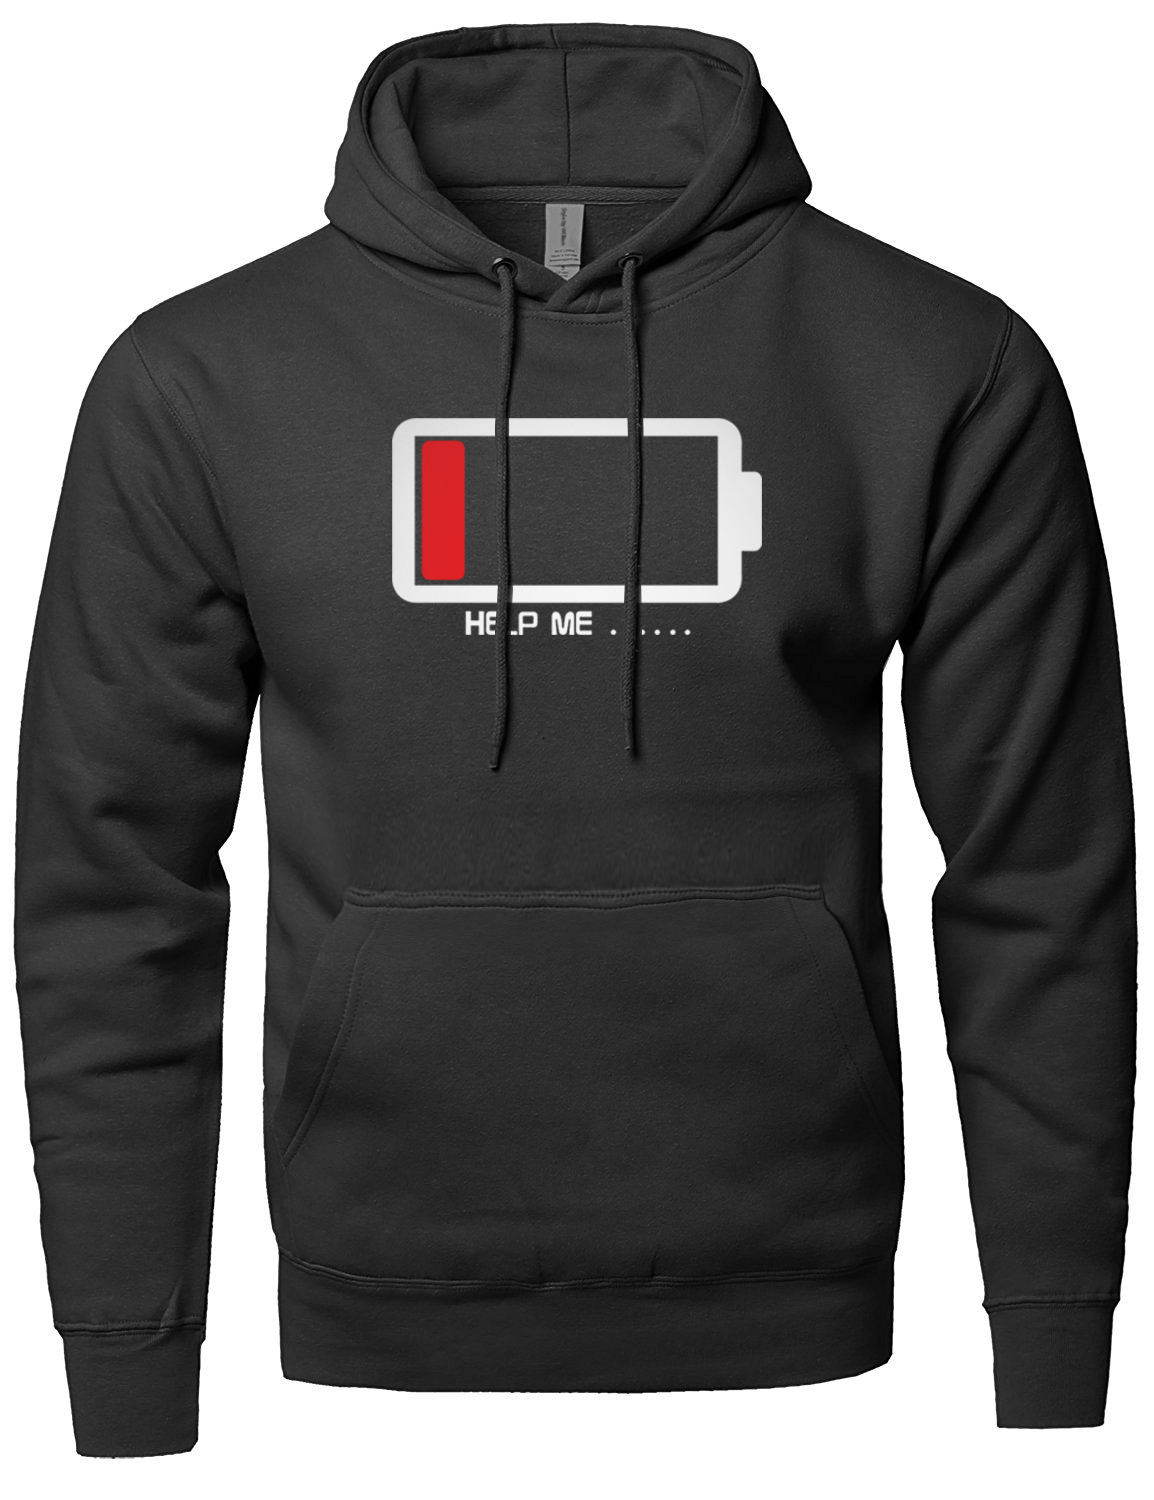 The Batteries Lower Help Me Funny Print Hoodie 2018 Spring Winter Fleece Sweatshirts Fas ...